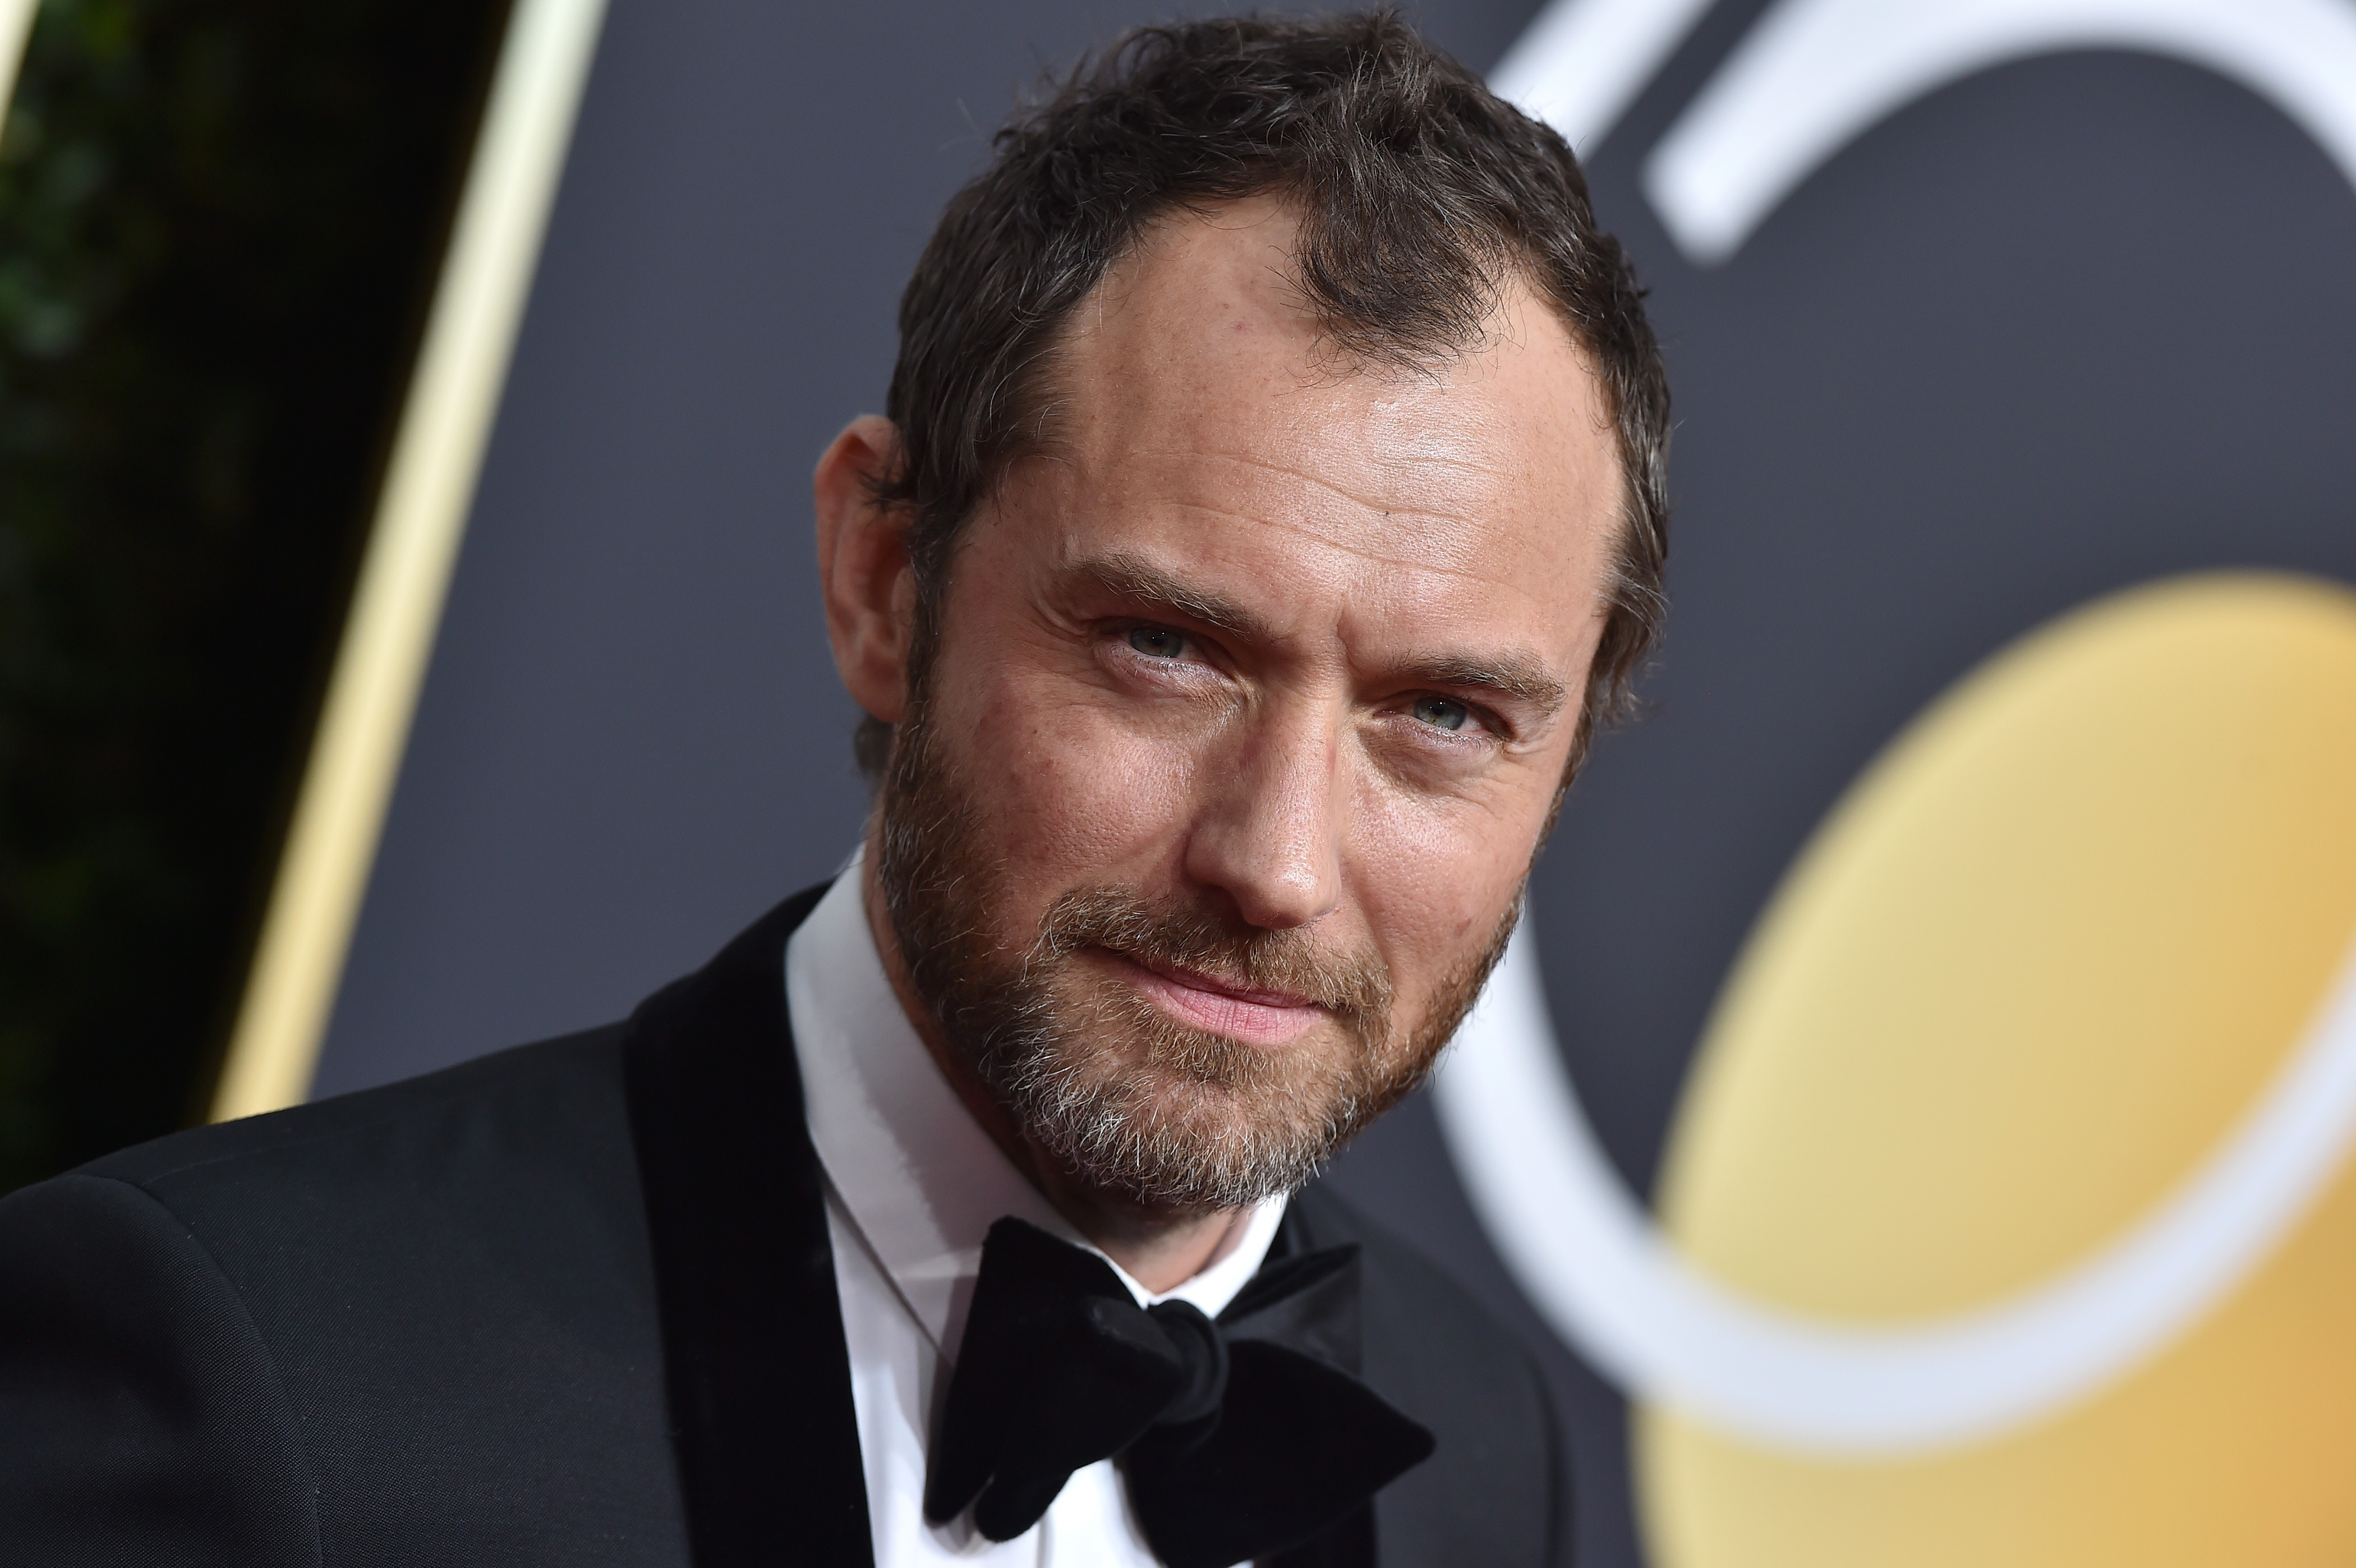 BEVERLY HILLS, CA - JANUARY 07:  Actor Jude Law attends the 75th Annual Golden Globe Awards at The Beverly Hilton Hotel on January 7, 2018 in Beverly Hills, California.  (Photo by Axelle/Bauer-Griffin/FilmMagic)